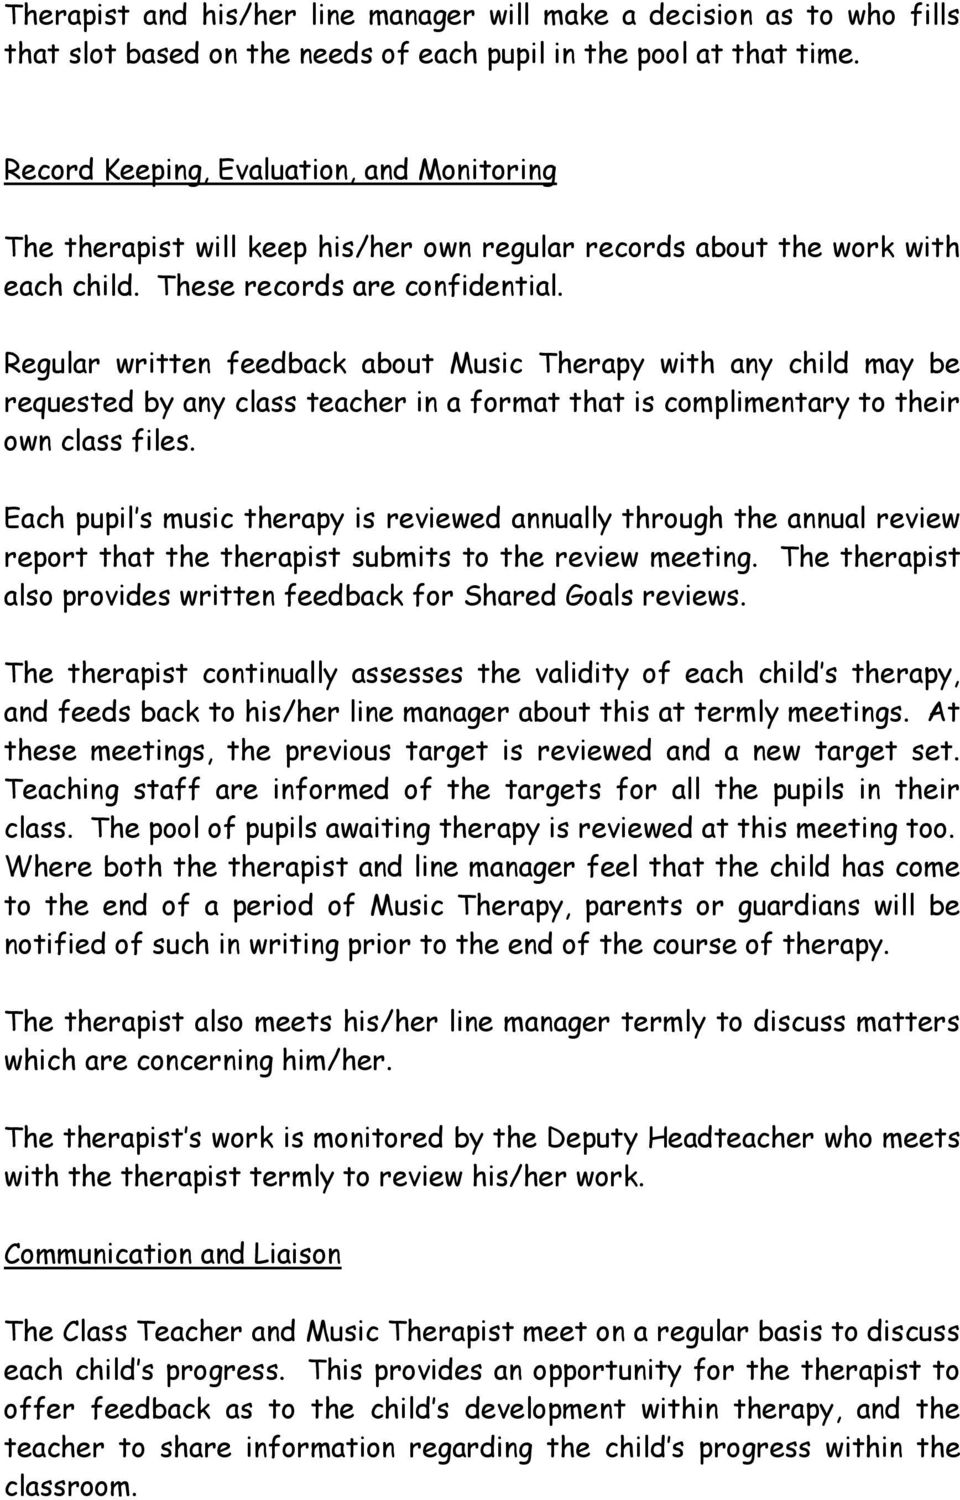 Regular written feedback about Music Therapy with any child may be requested by any class teacher in a format that is complimentary to their own class files.